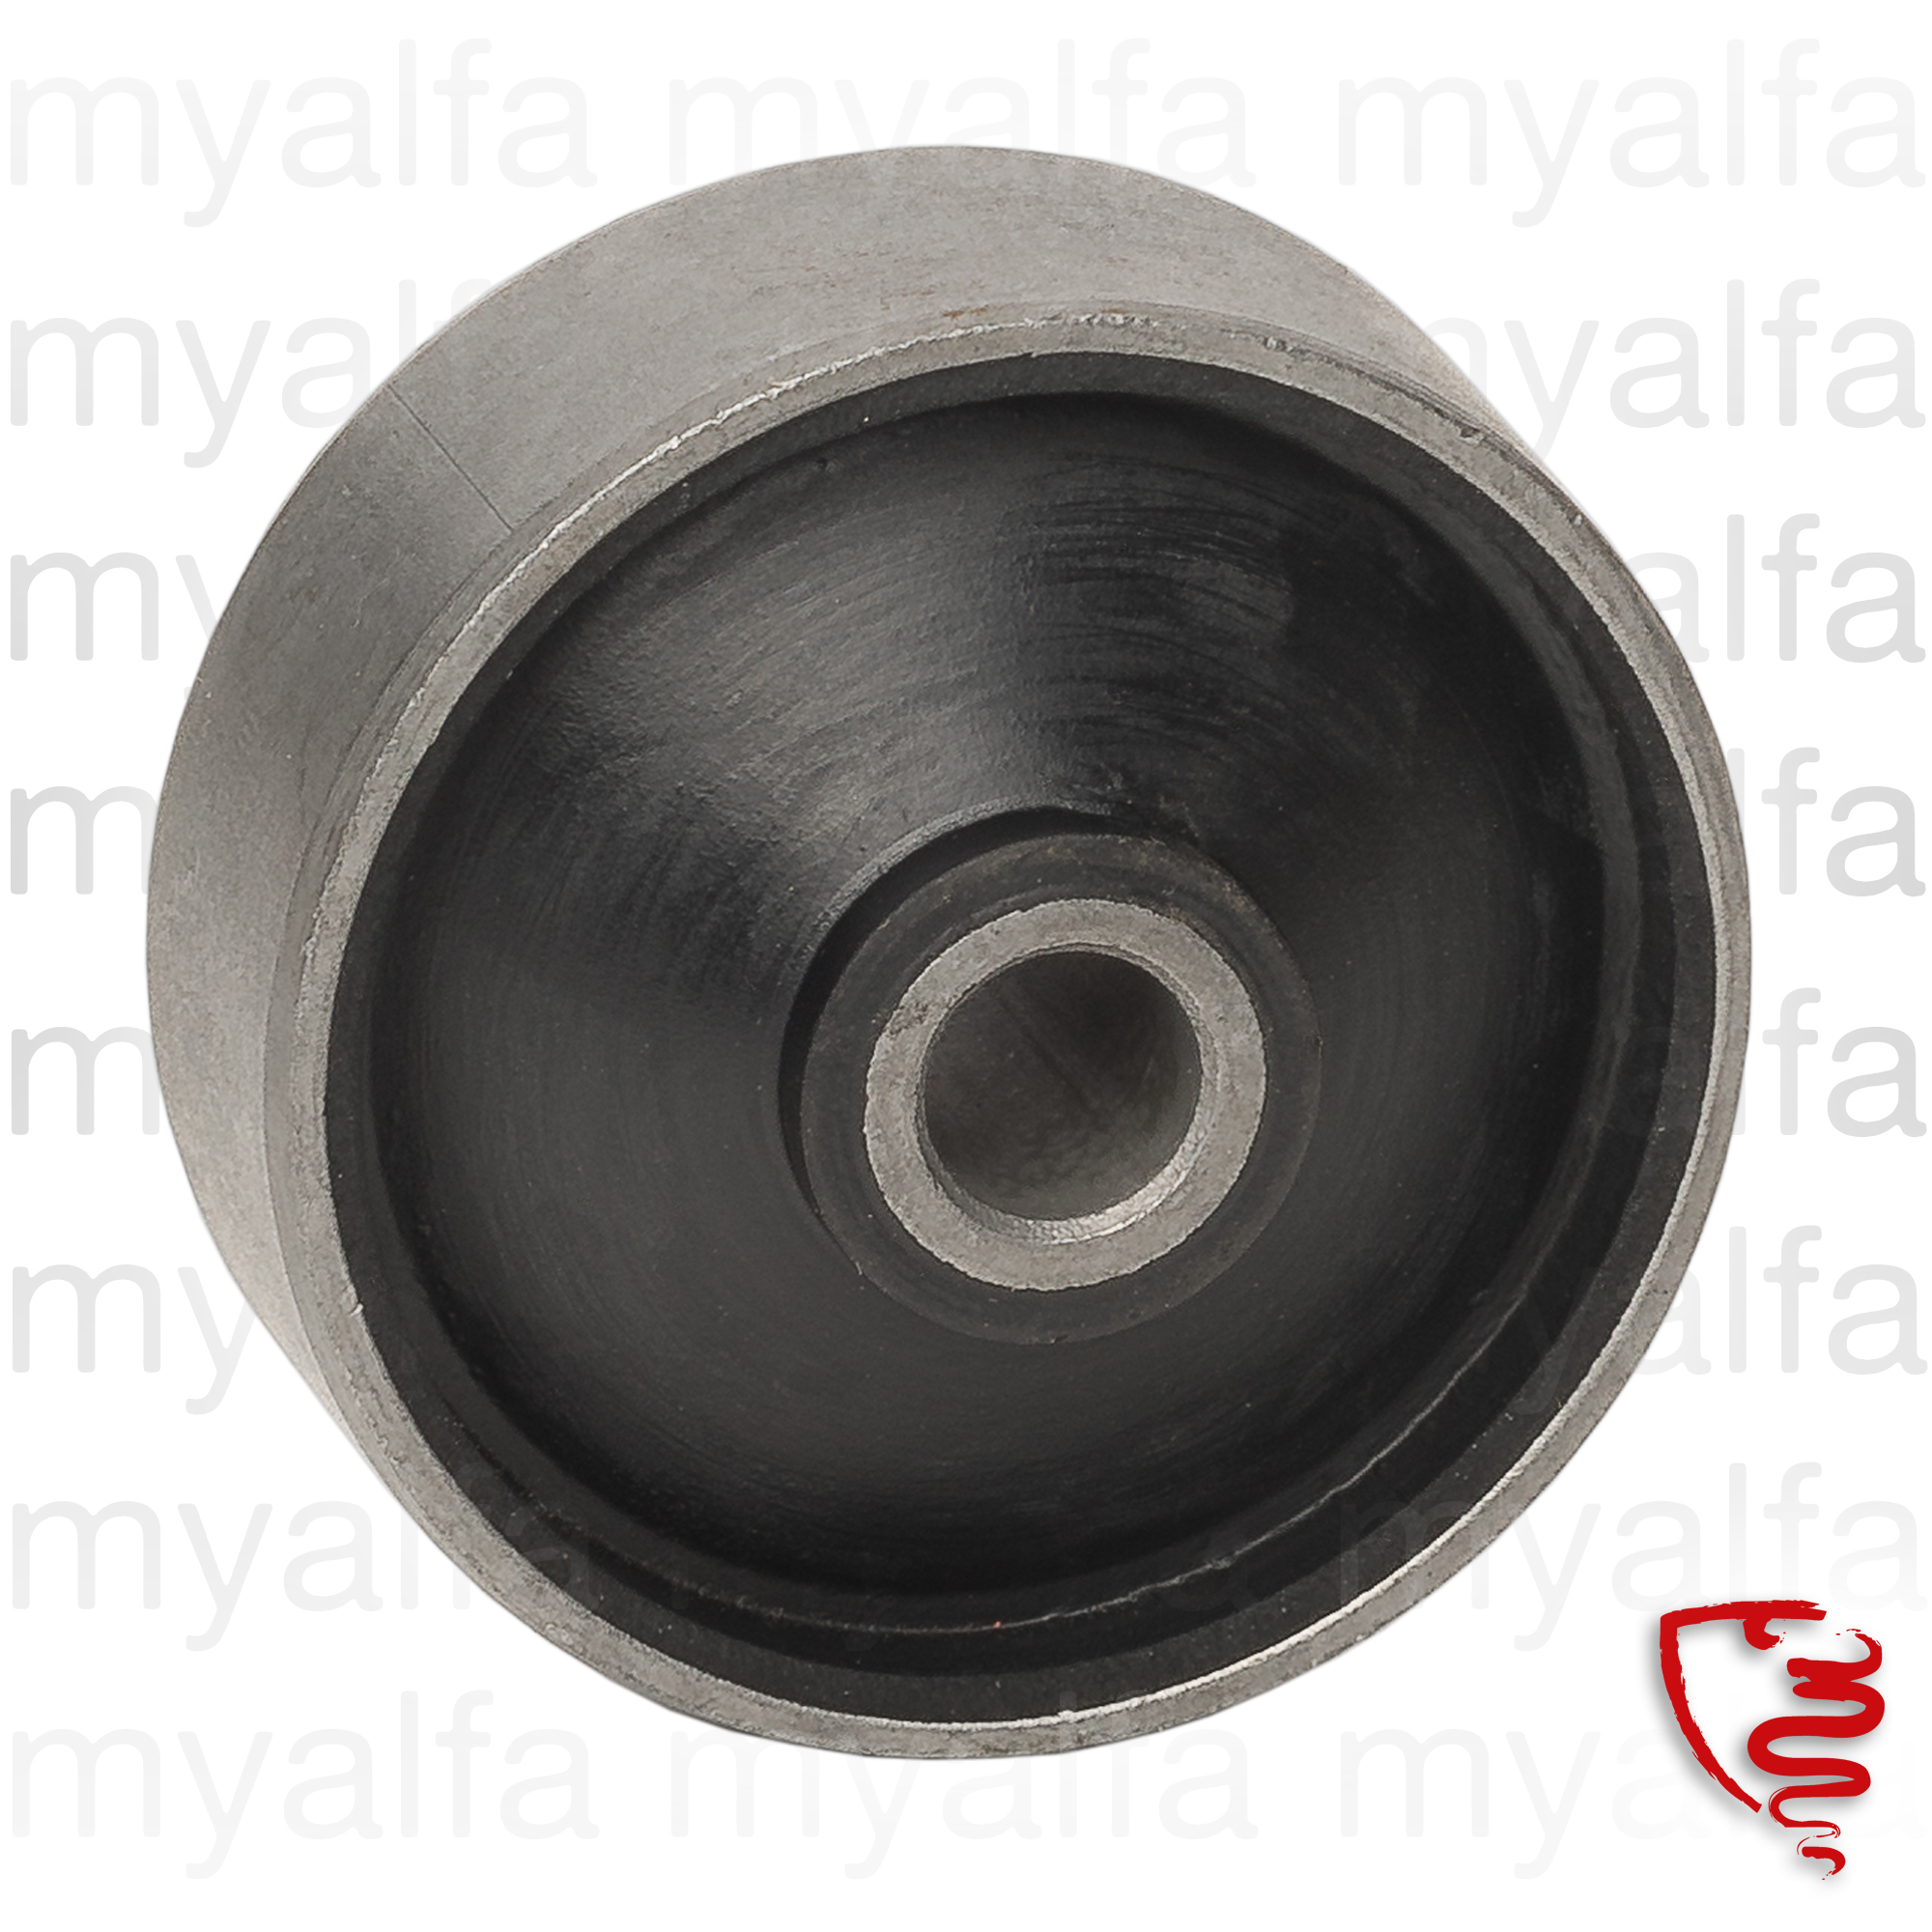 Bushing exhaust support for 105/115, Exhaust System, Attachment Parts